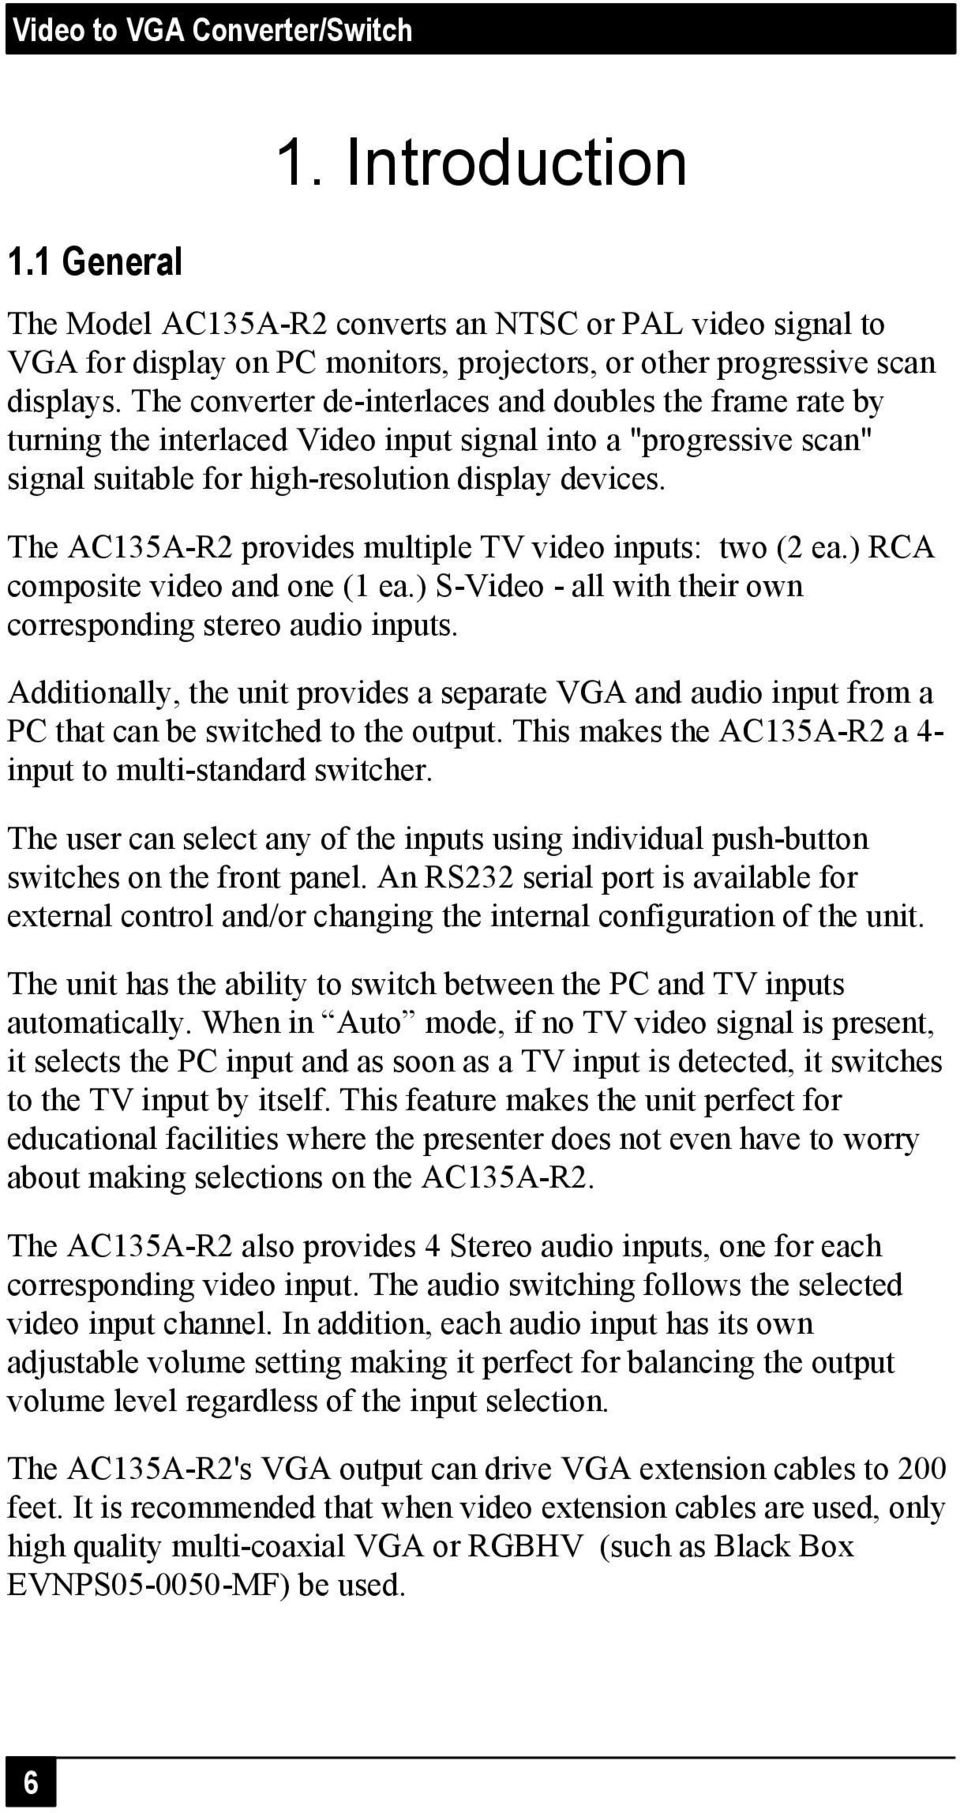 The AC135A-R2 provides multiple TV video inputs: two (2 ea.) RCA composite video and one (1 ea.) S-Video - all with their own corresponding stereo audio inputs.